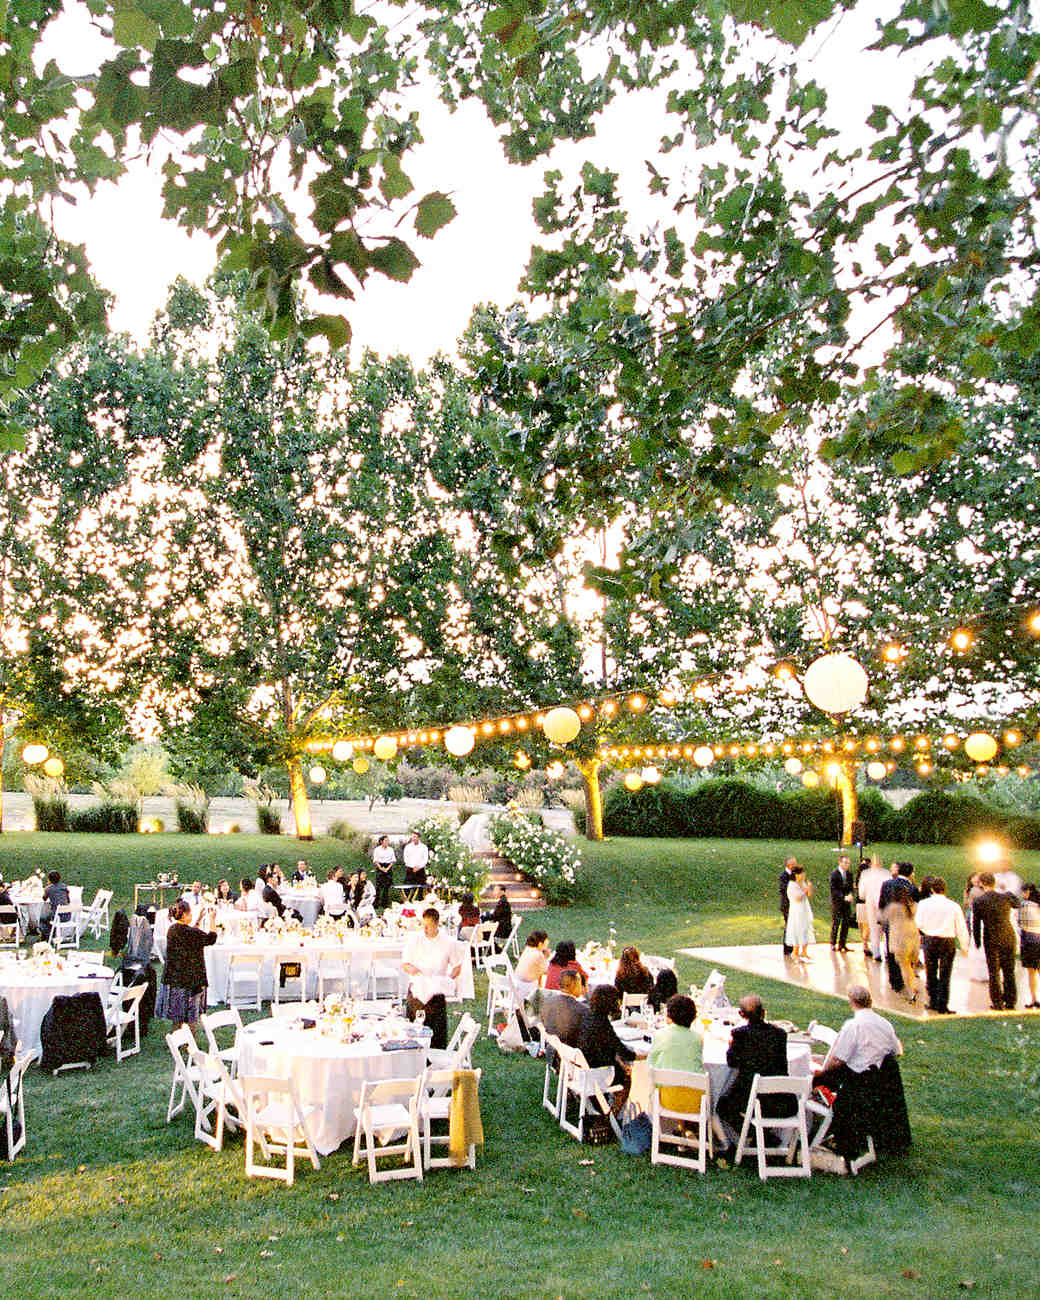 Beautiful Outdoor Wedding Ideas: Outdoor Wedding Lighting Ideas From Real Celebrations